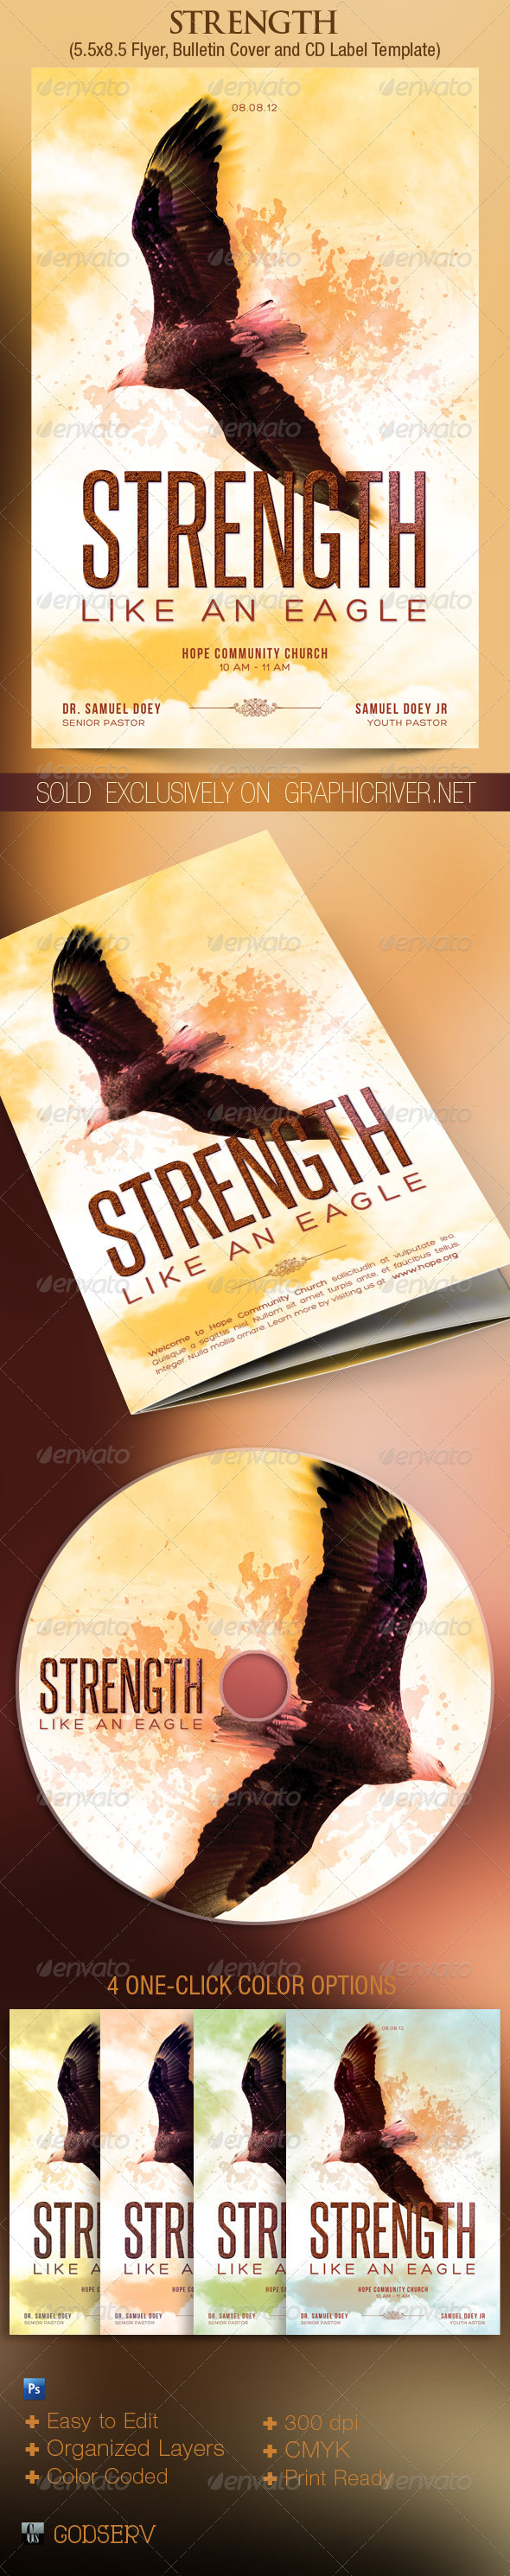 Eagle Strength Flyer Bulletin CD Template - Church Flyers